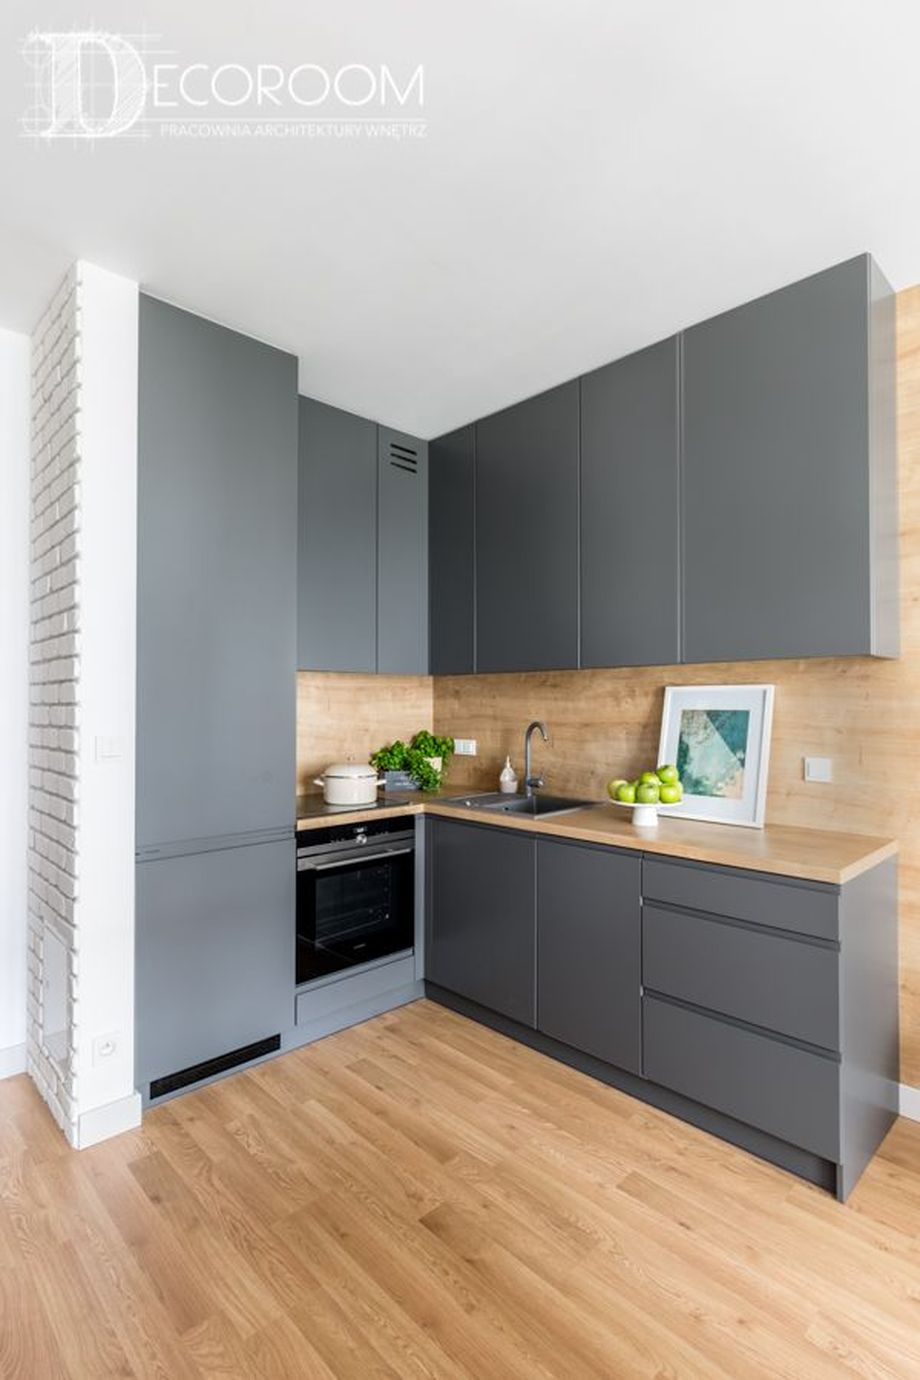 50 Ideas How To Make Small Kitchen For Apartment 40 Hoommy Com